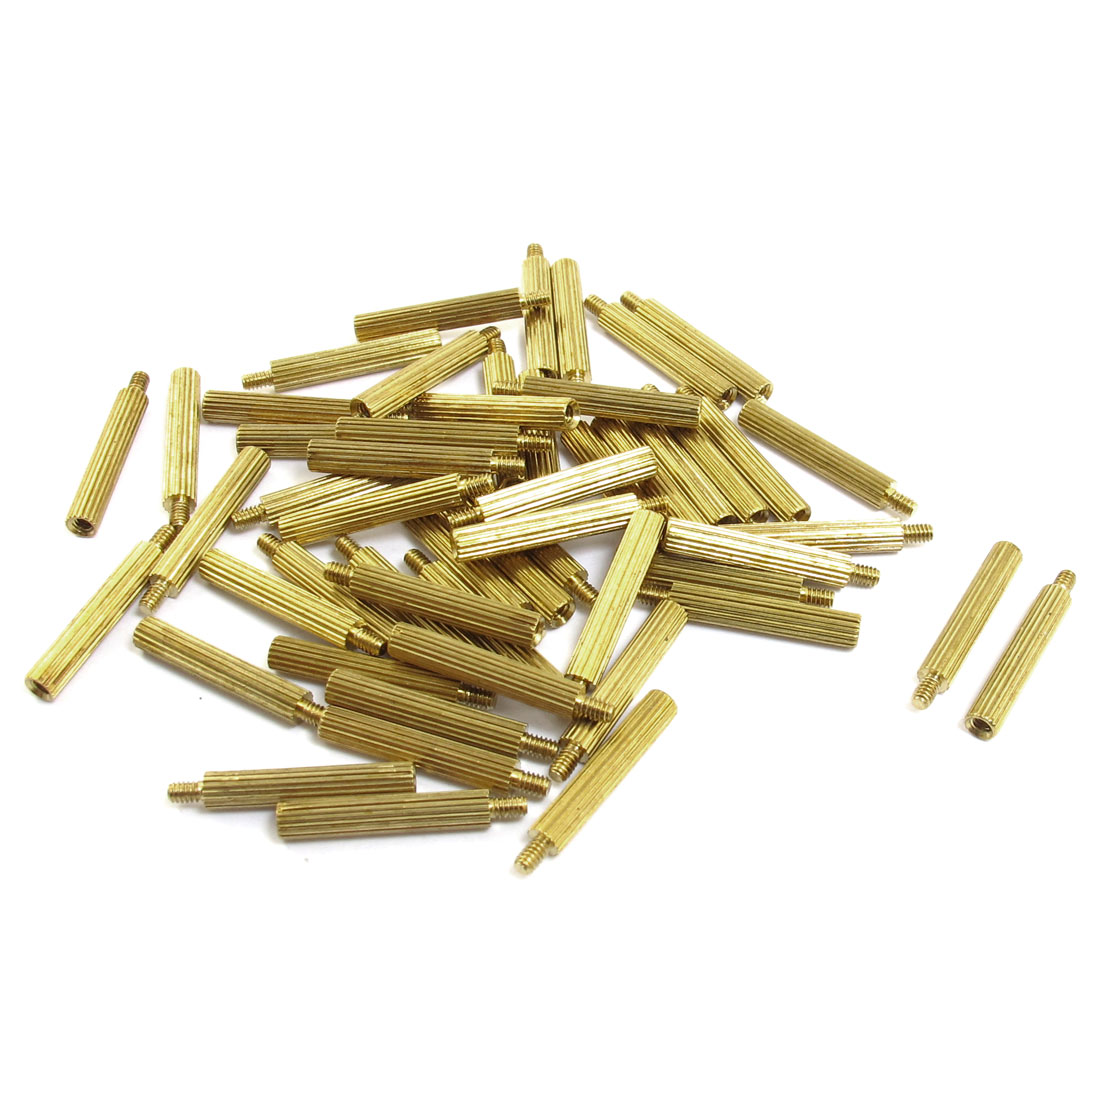 50 Pcs Male to Female Thread Brass Pillars Standoff Spacer M2x17mmx20mm